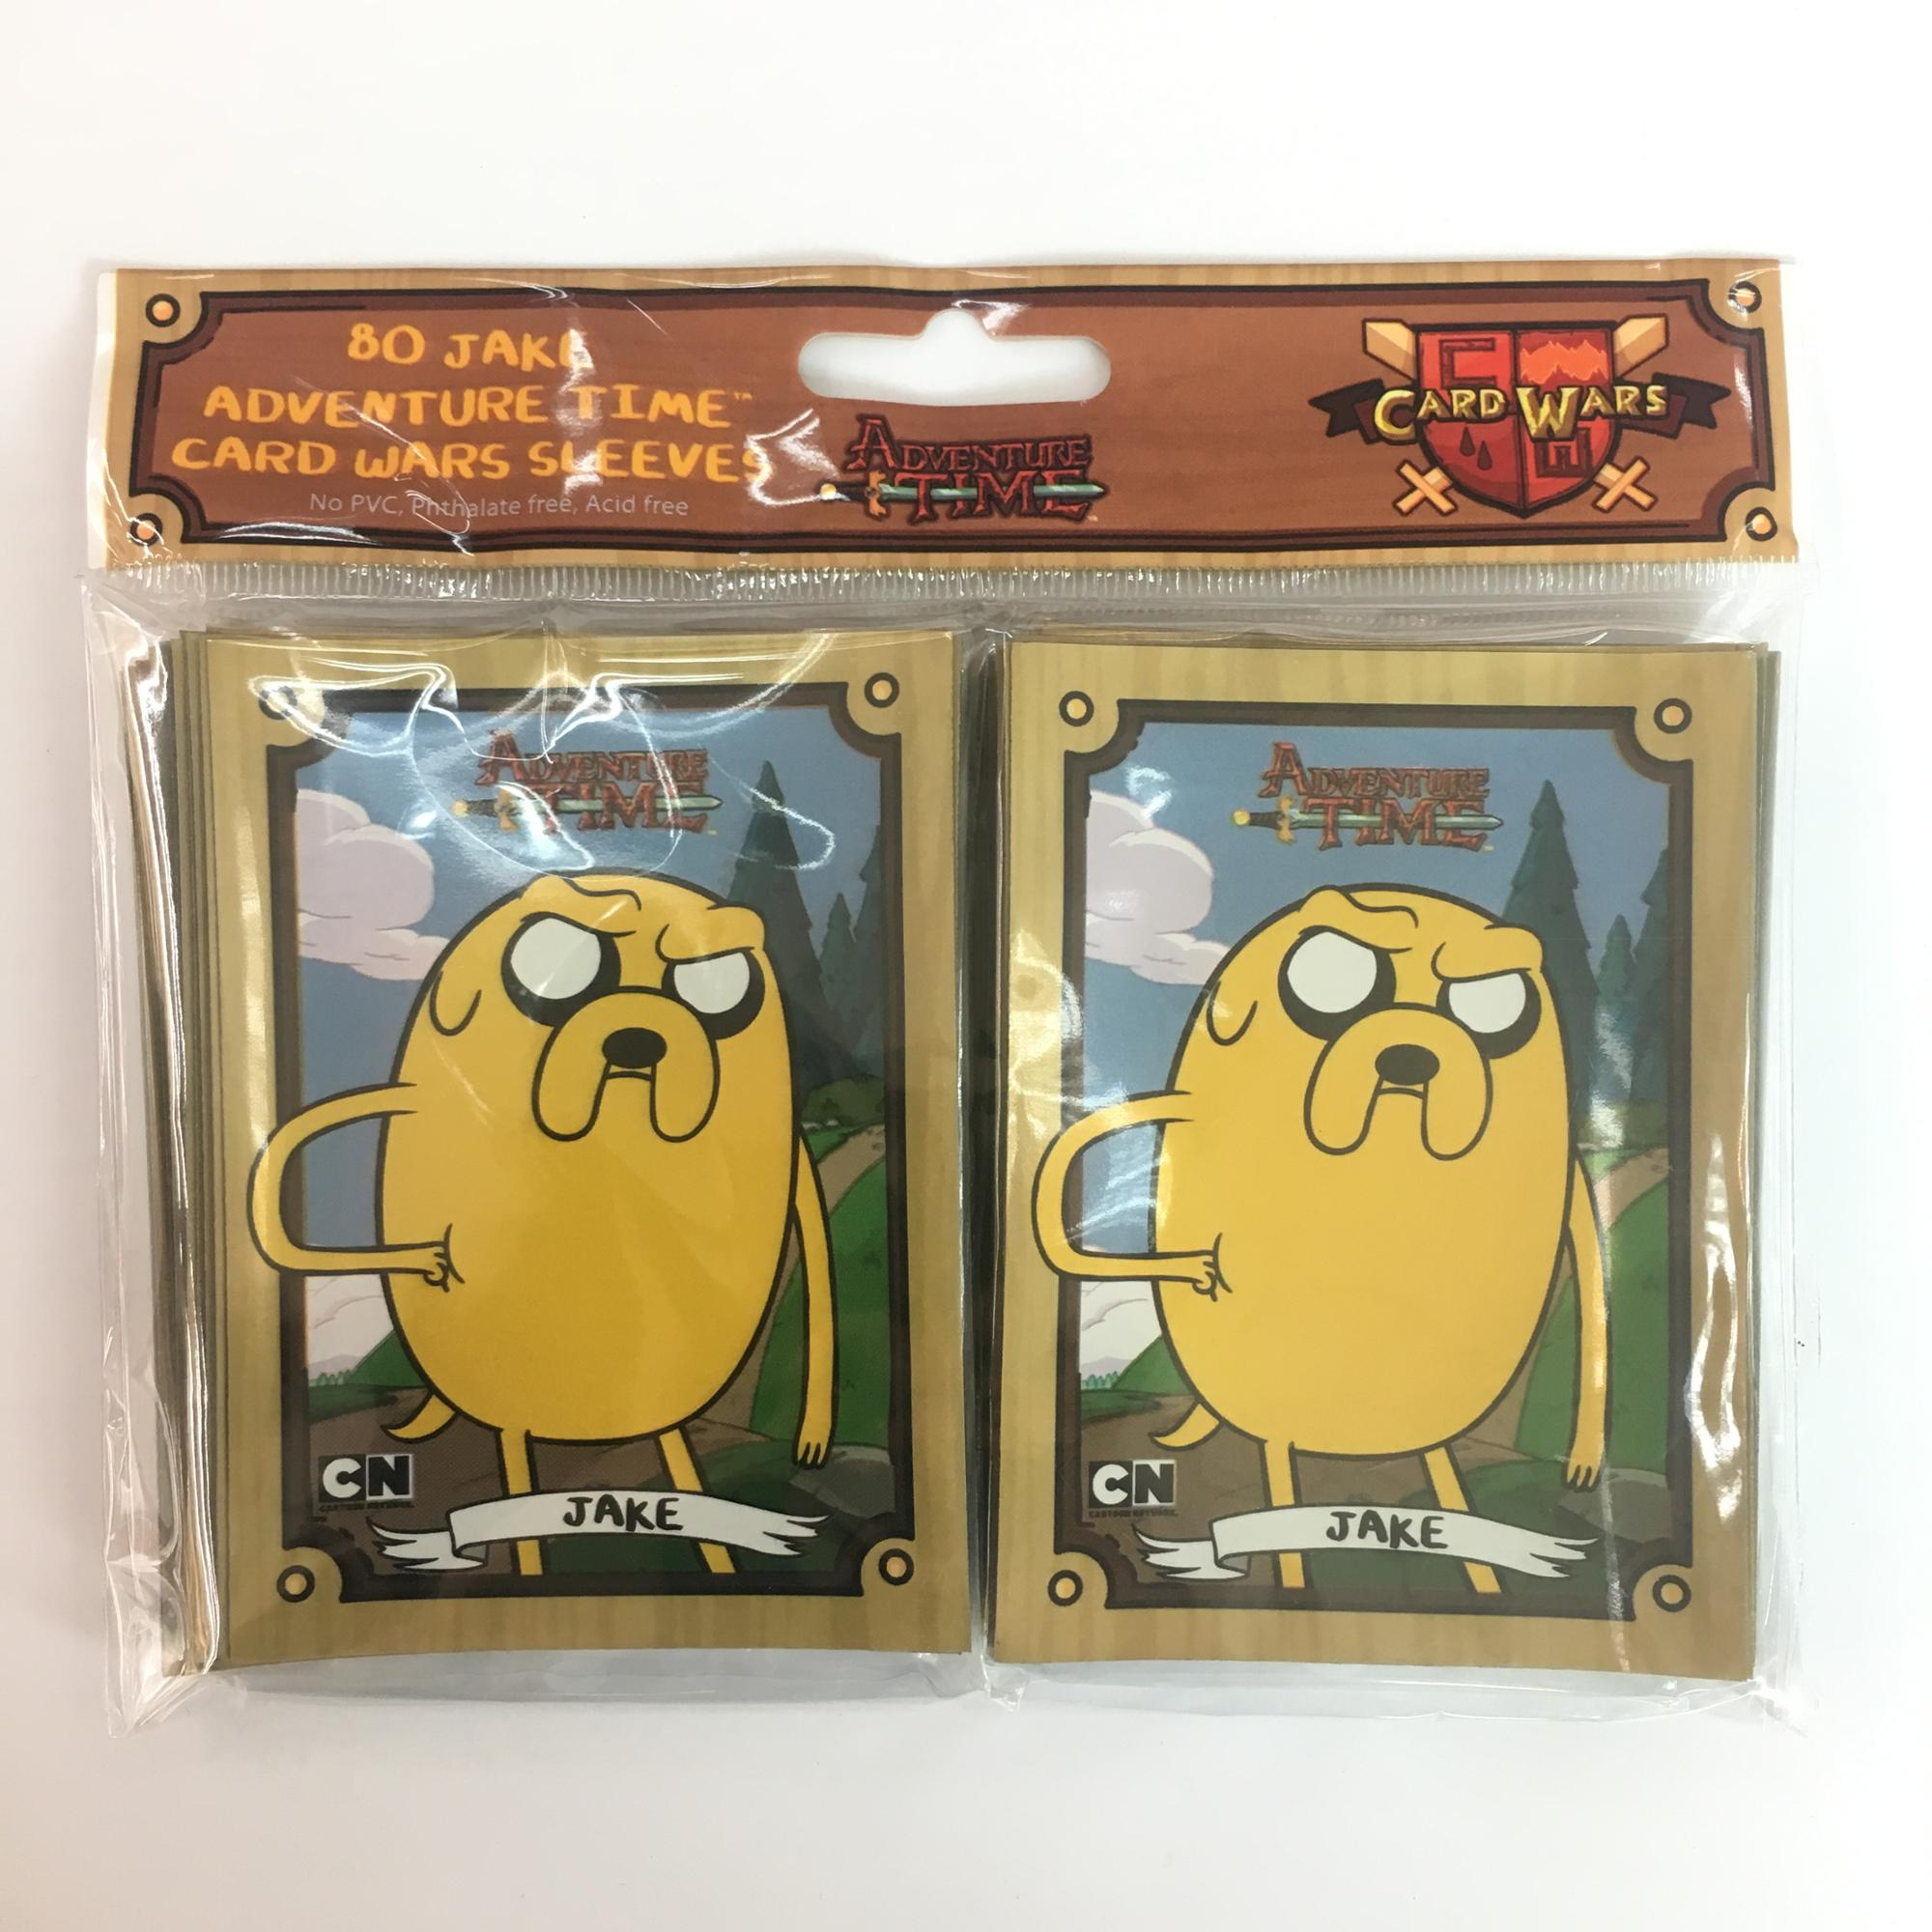 Plastic custom trading Cards Sleeves 2015 from Dongguan